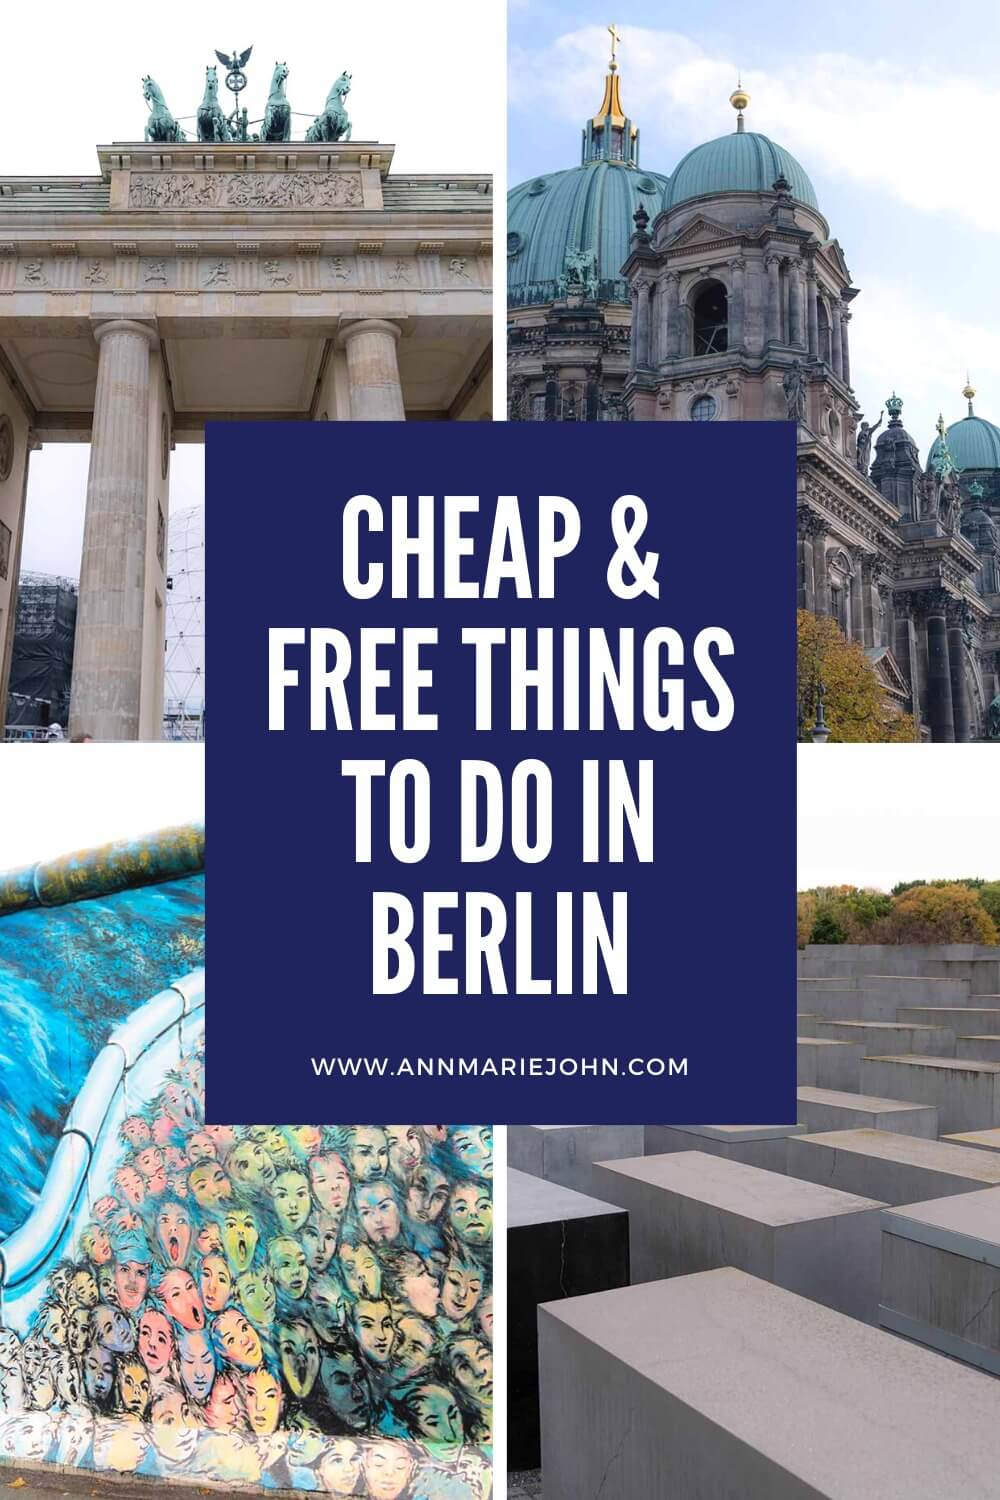 Cheap and free things to do in Berlin Pinterest Image